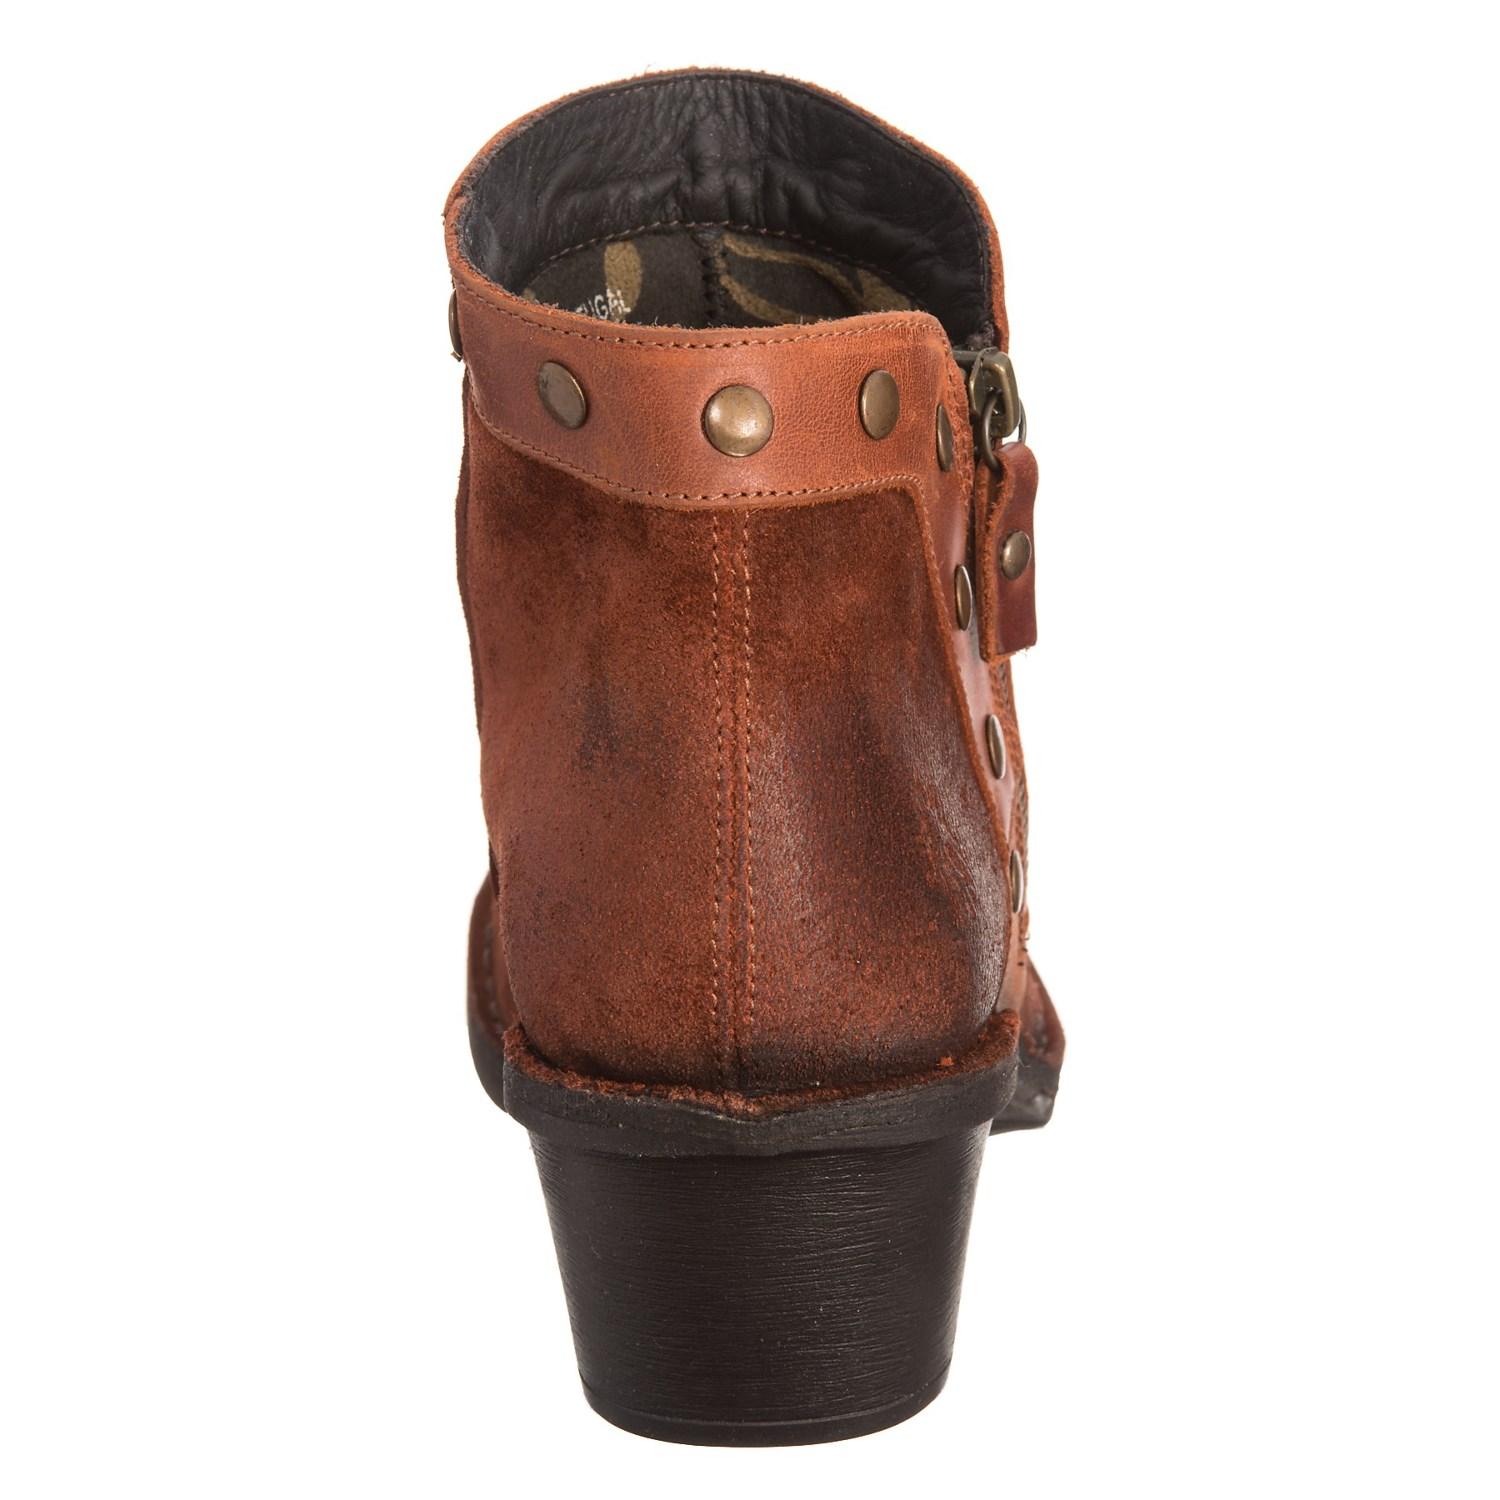 release date 69a21 5d675 fly-london-made-in-portugal-duke941fly-ankle-boots-suede-for-women~a~568gf 3~1500.1.jpg